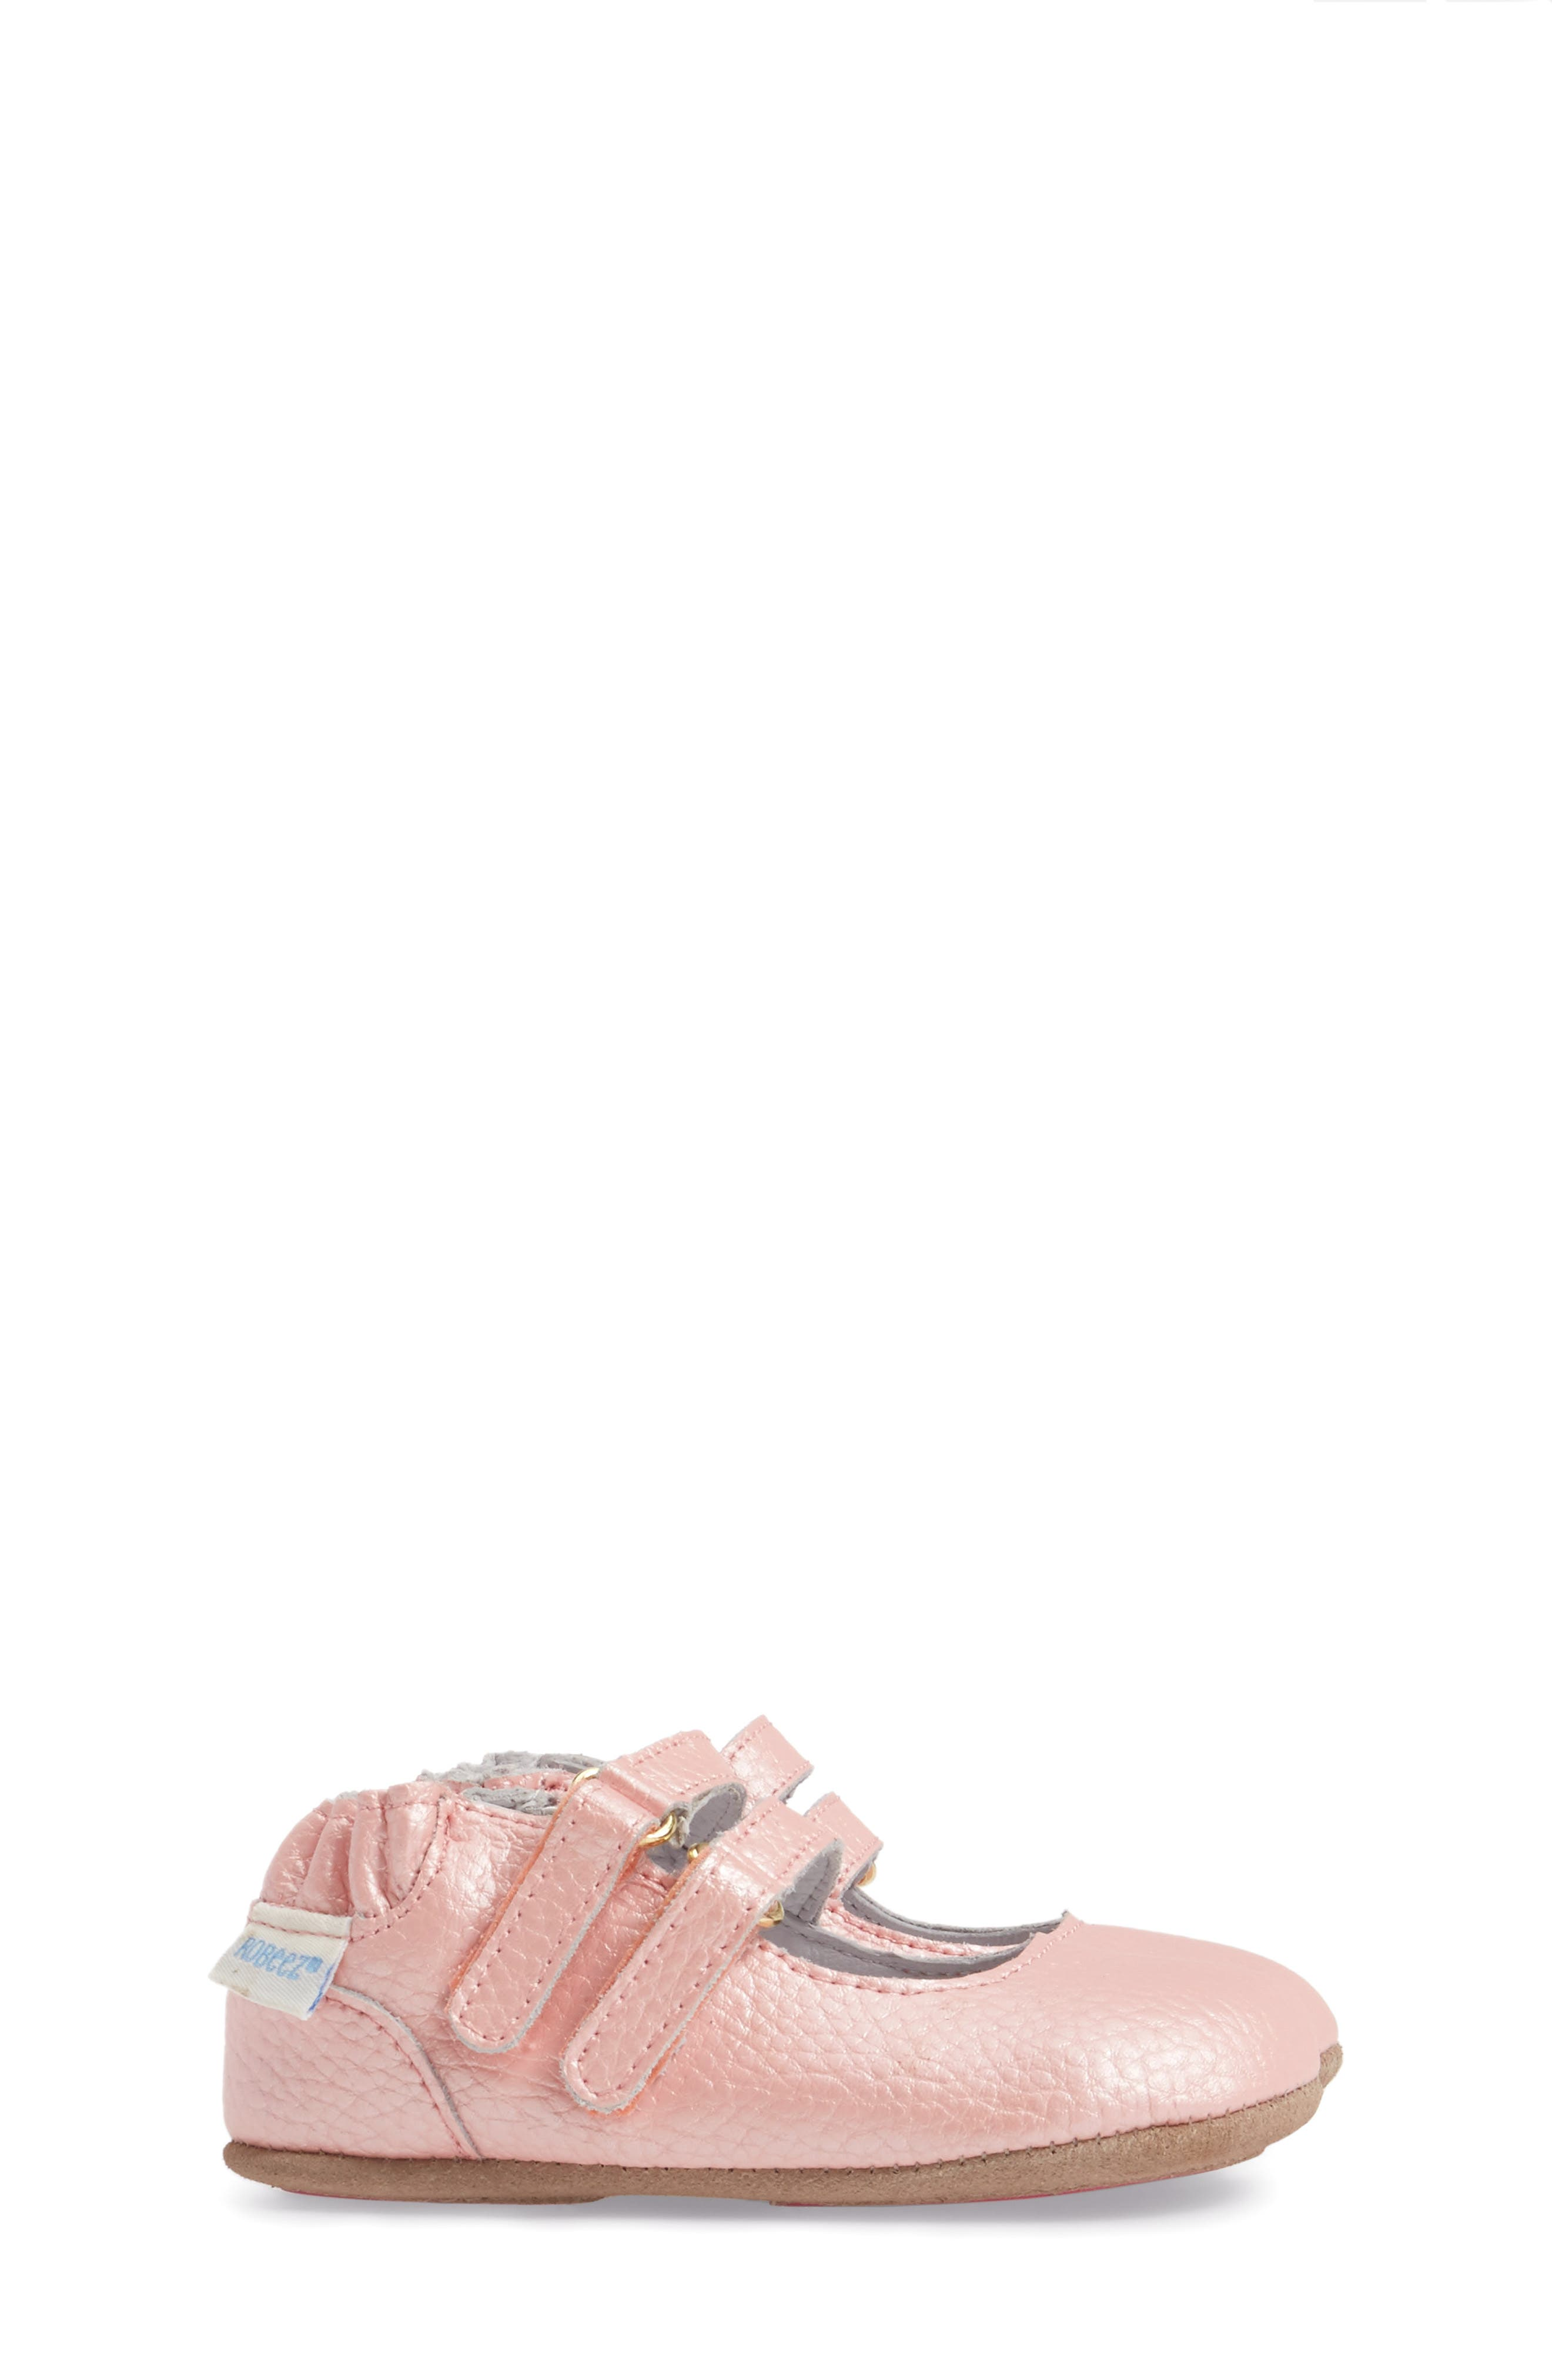 Rose Mary Jane Crib Shoe,                             Alternate thumbnail 3, color,                             ROSE